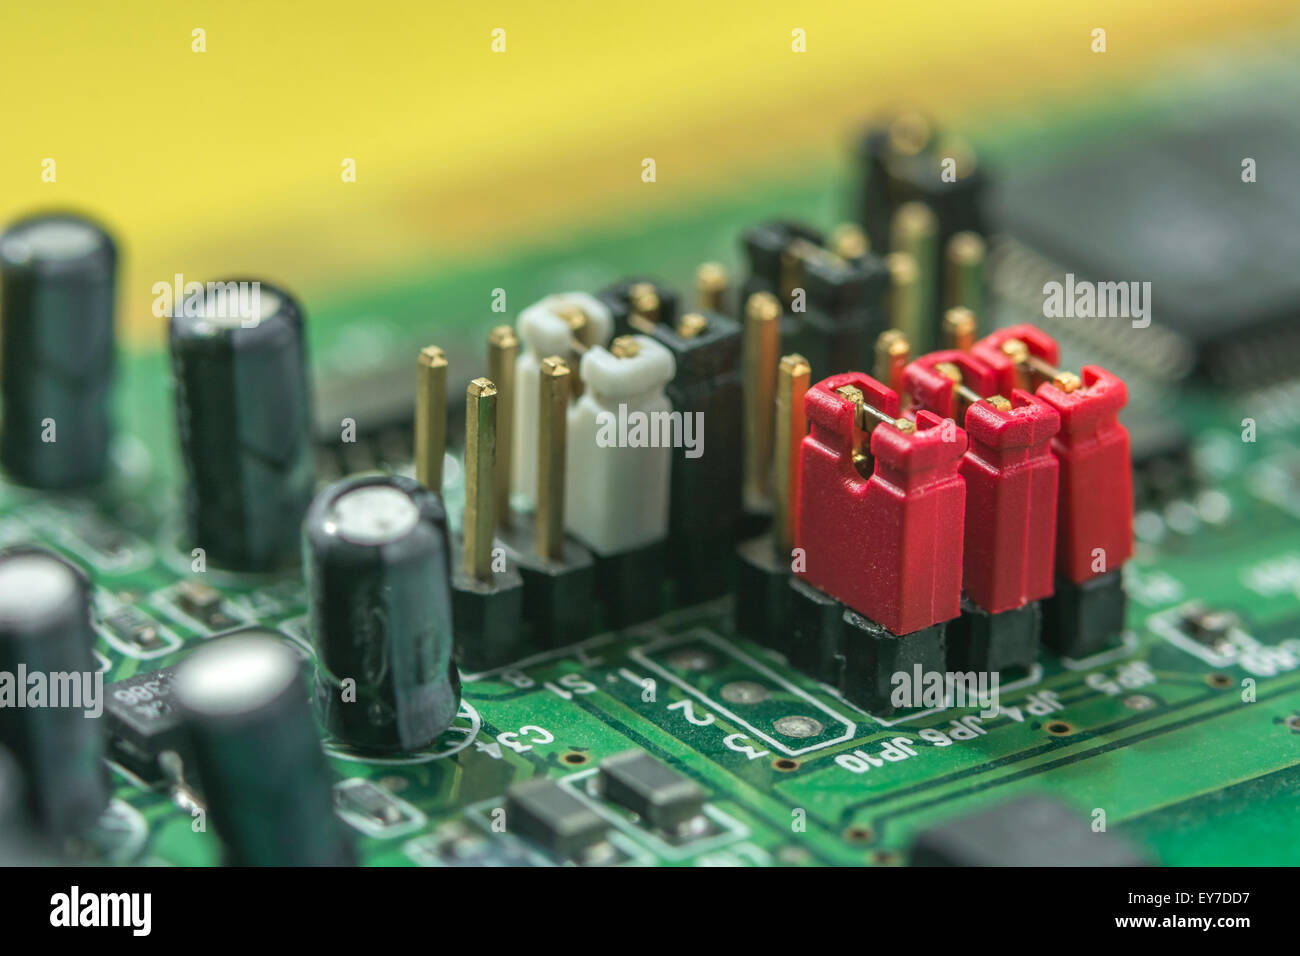 macro photo of printed circuit board (pcb) with set of \u0027jumpersmacro photo of printed circuit board (pcb) with set of \u0027jumpers\u0027